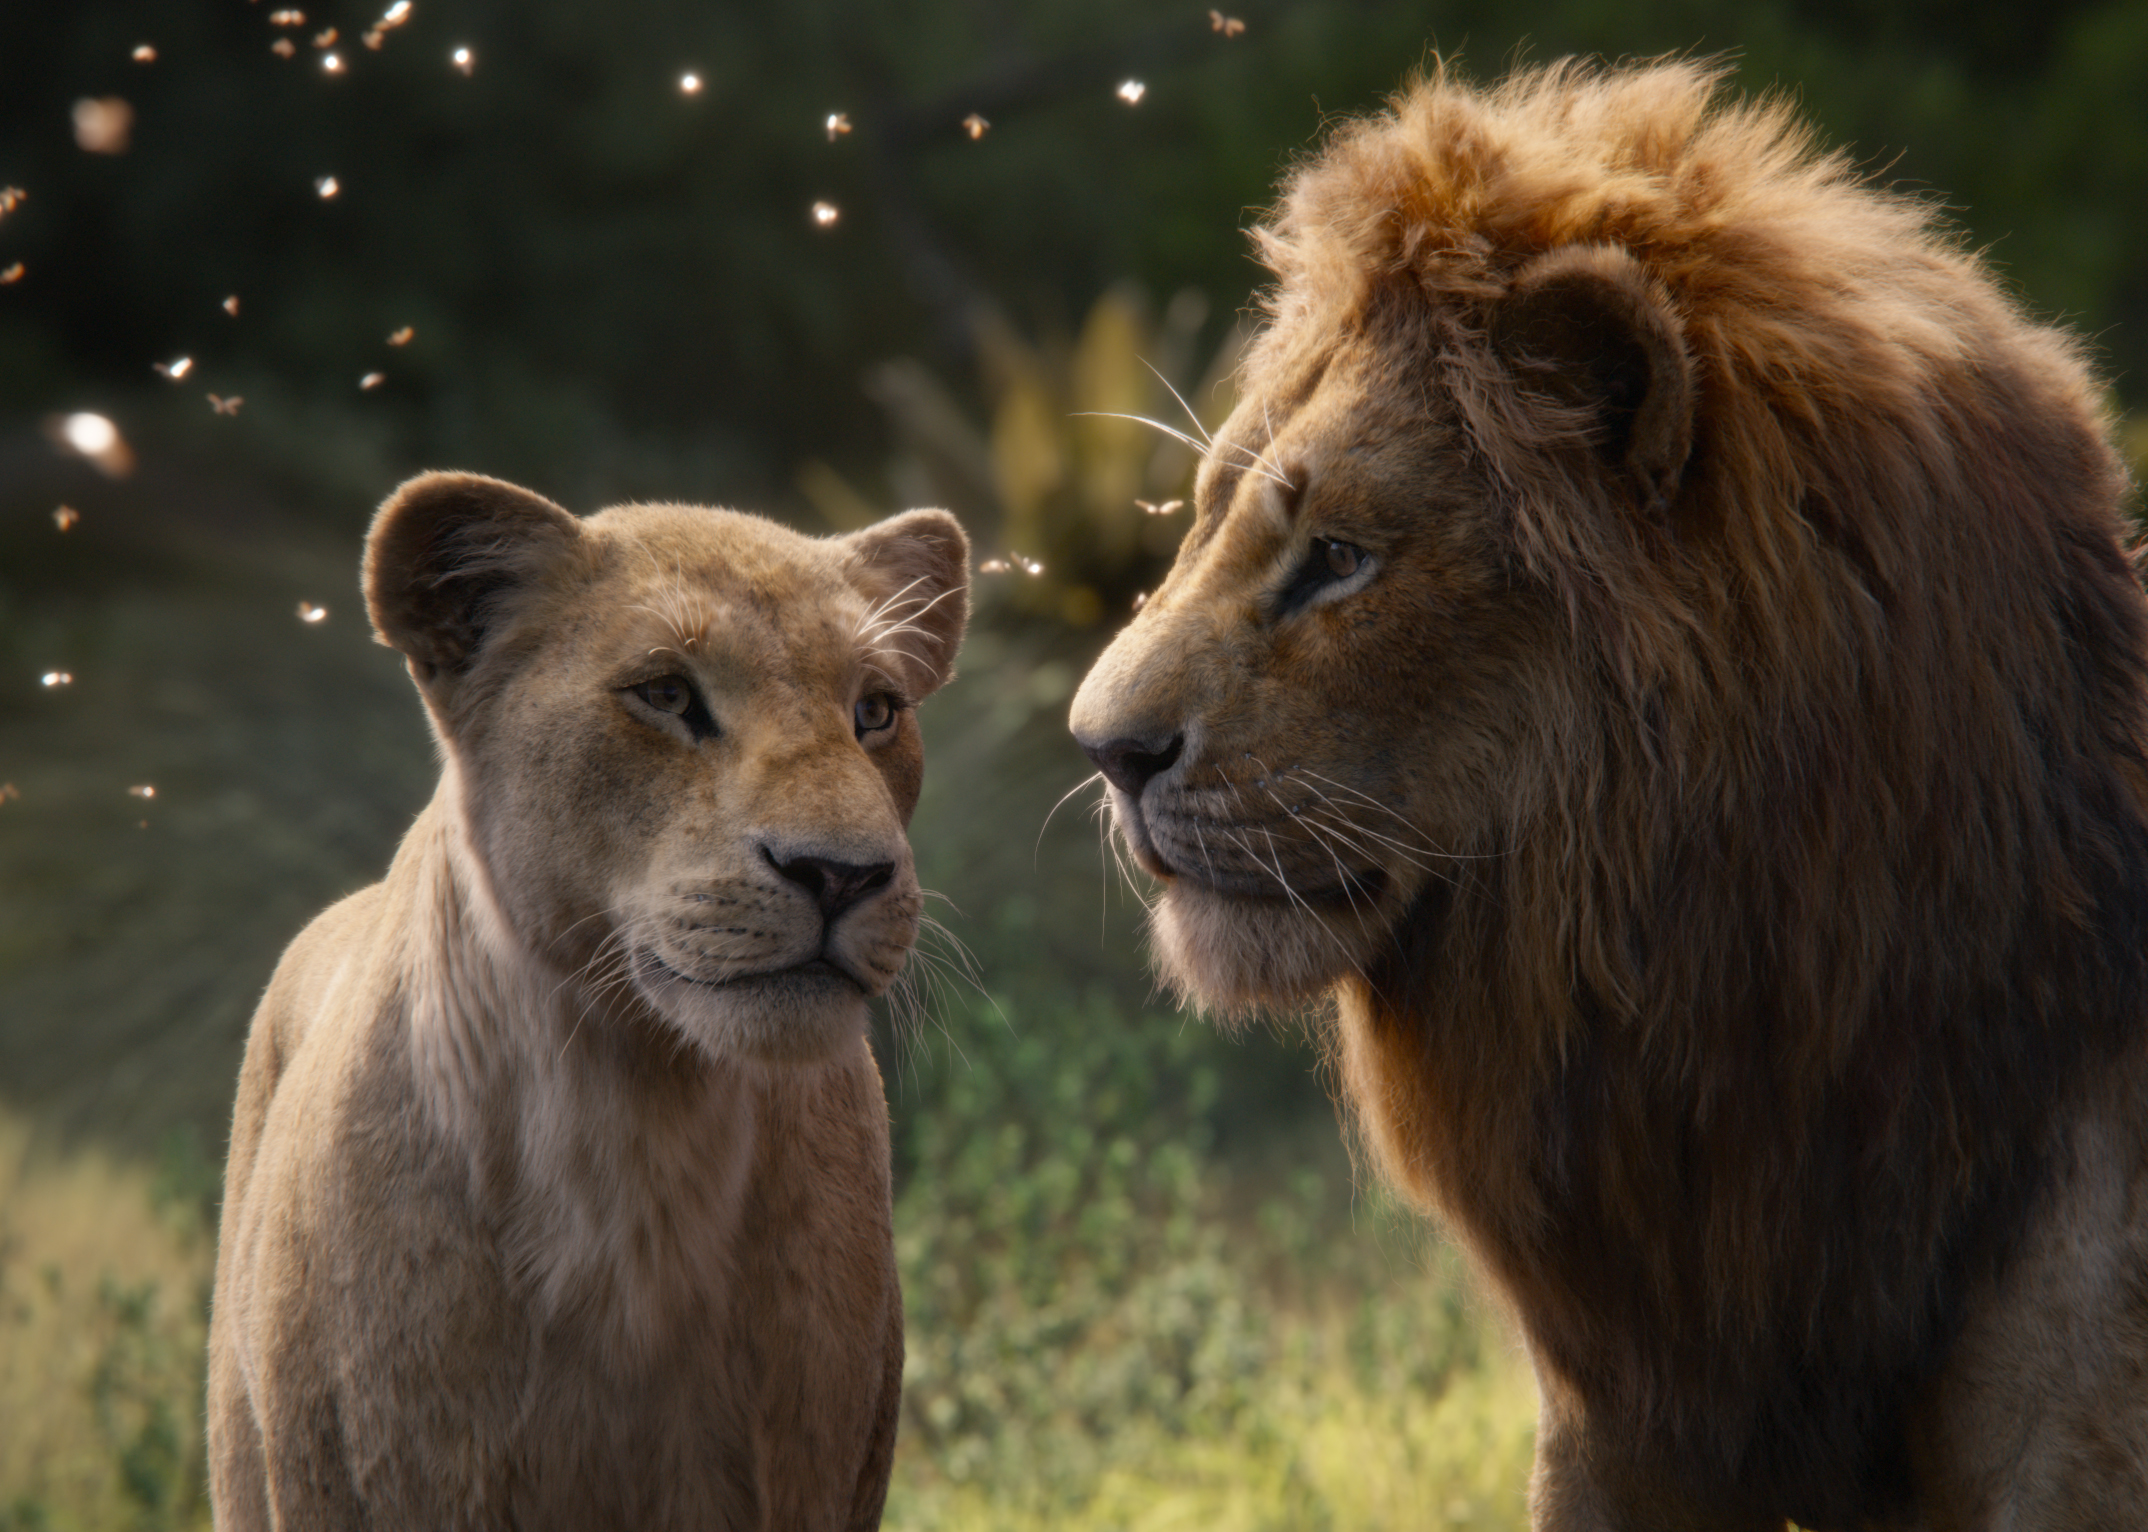 MOVIE REVIEW: The Lion King — Every Movie Has a Lesson